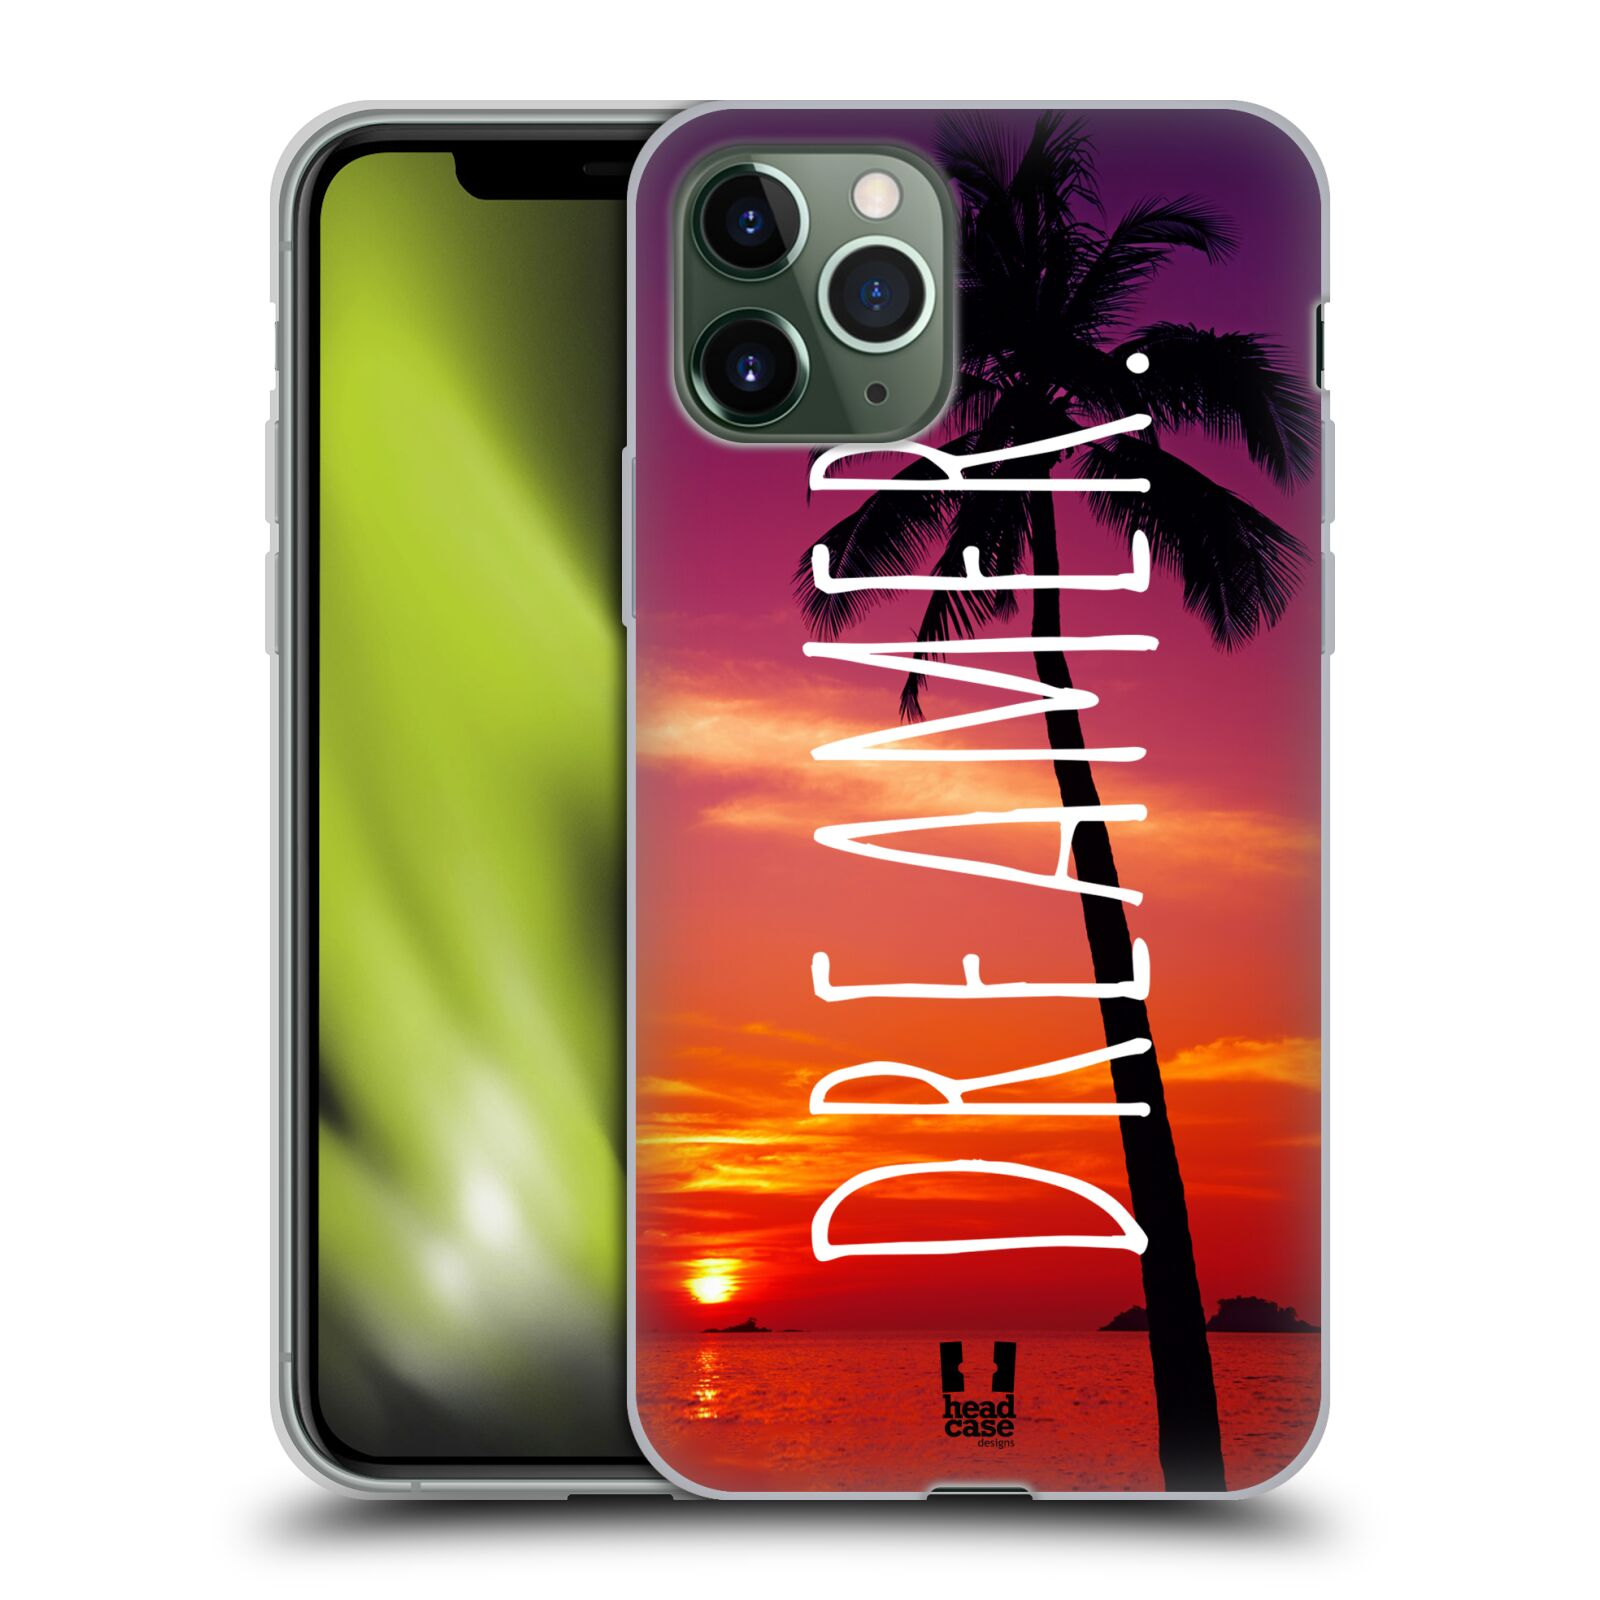 ultratenký obal na iphone 6 - Silikonové pouzdro na mobil Apple iPhone 11 Pro - Head Case - MIX DREAMER